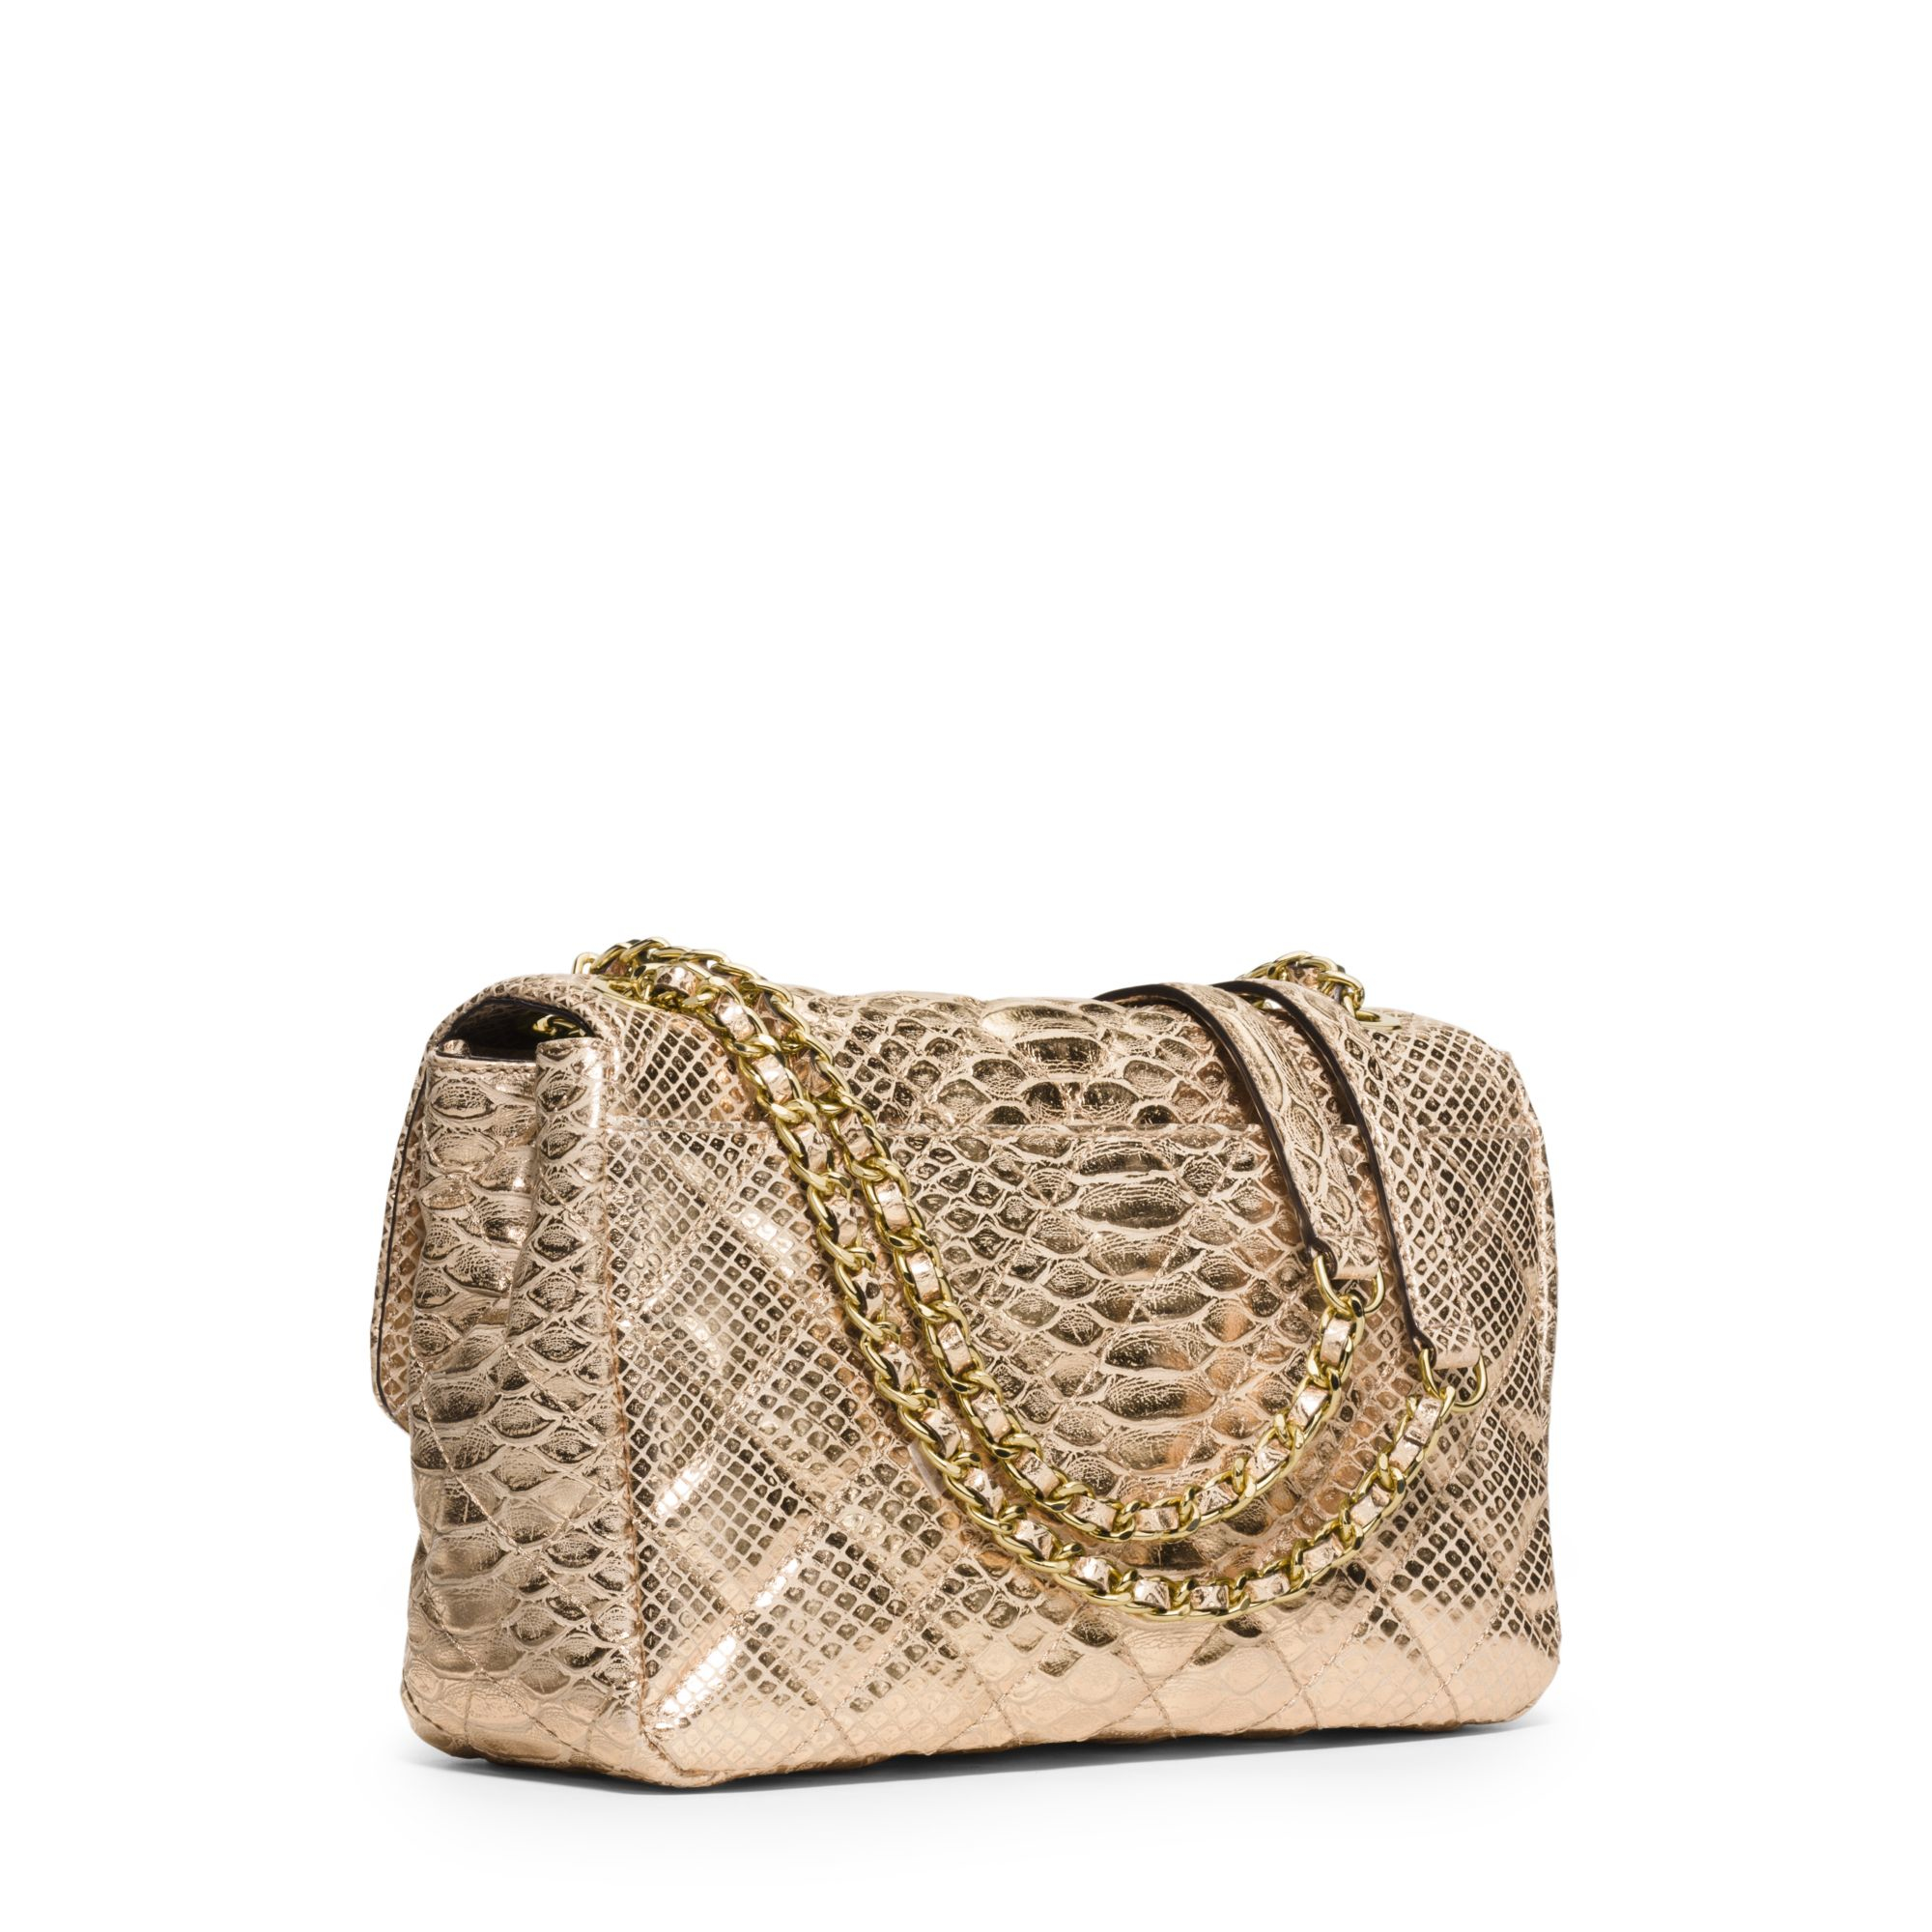 314a1c5a5466 low cost michael kors sloan large metallic embossed leather shoulder bag in  metallic lyst eeb64 cc45e